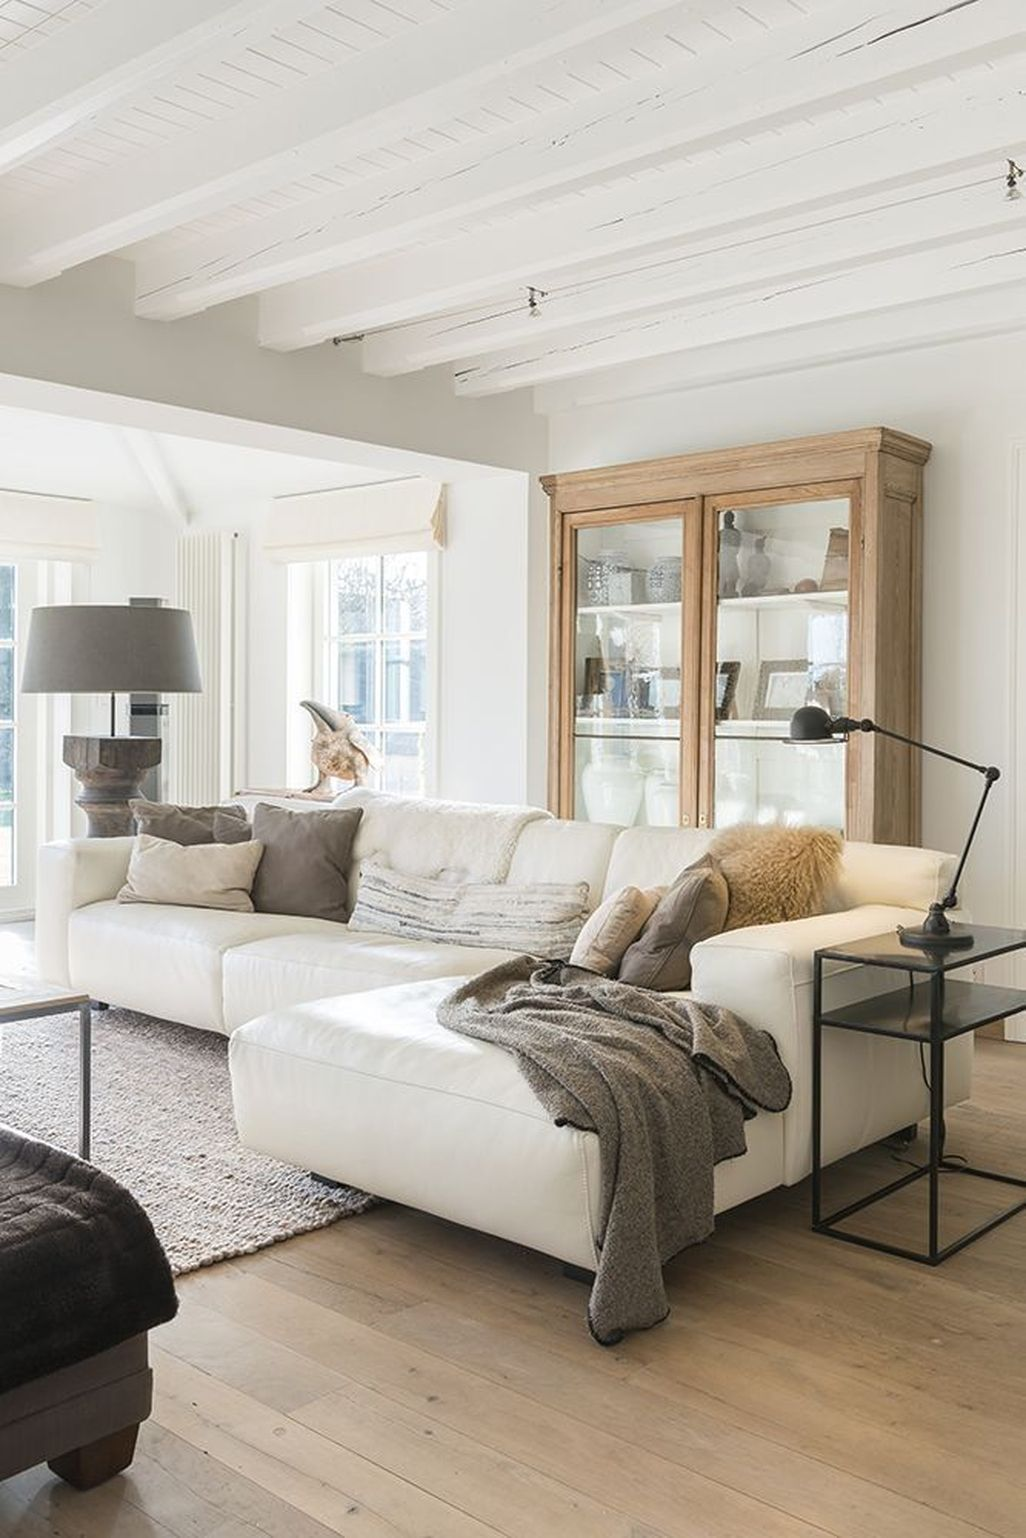 49 Simple White Living Room Ideas That Can Make Your Home Looks Neat ...